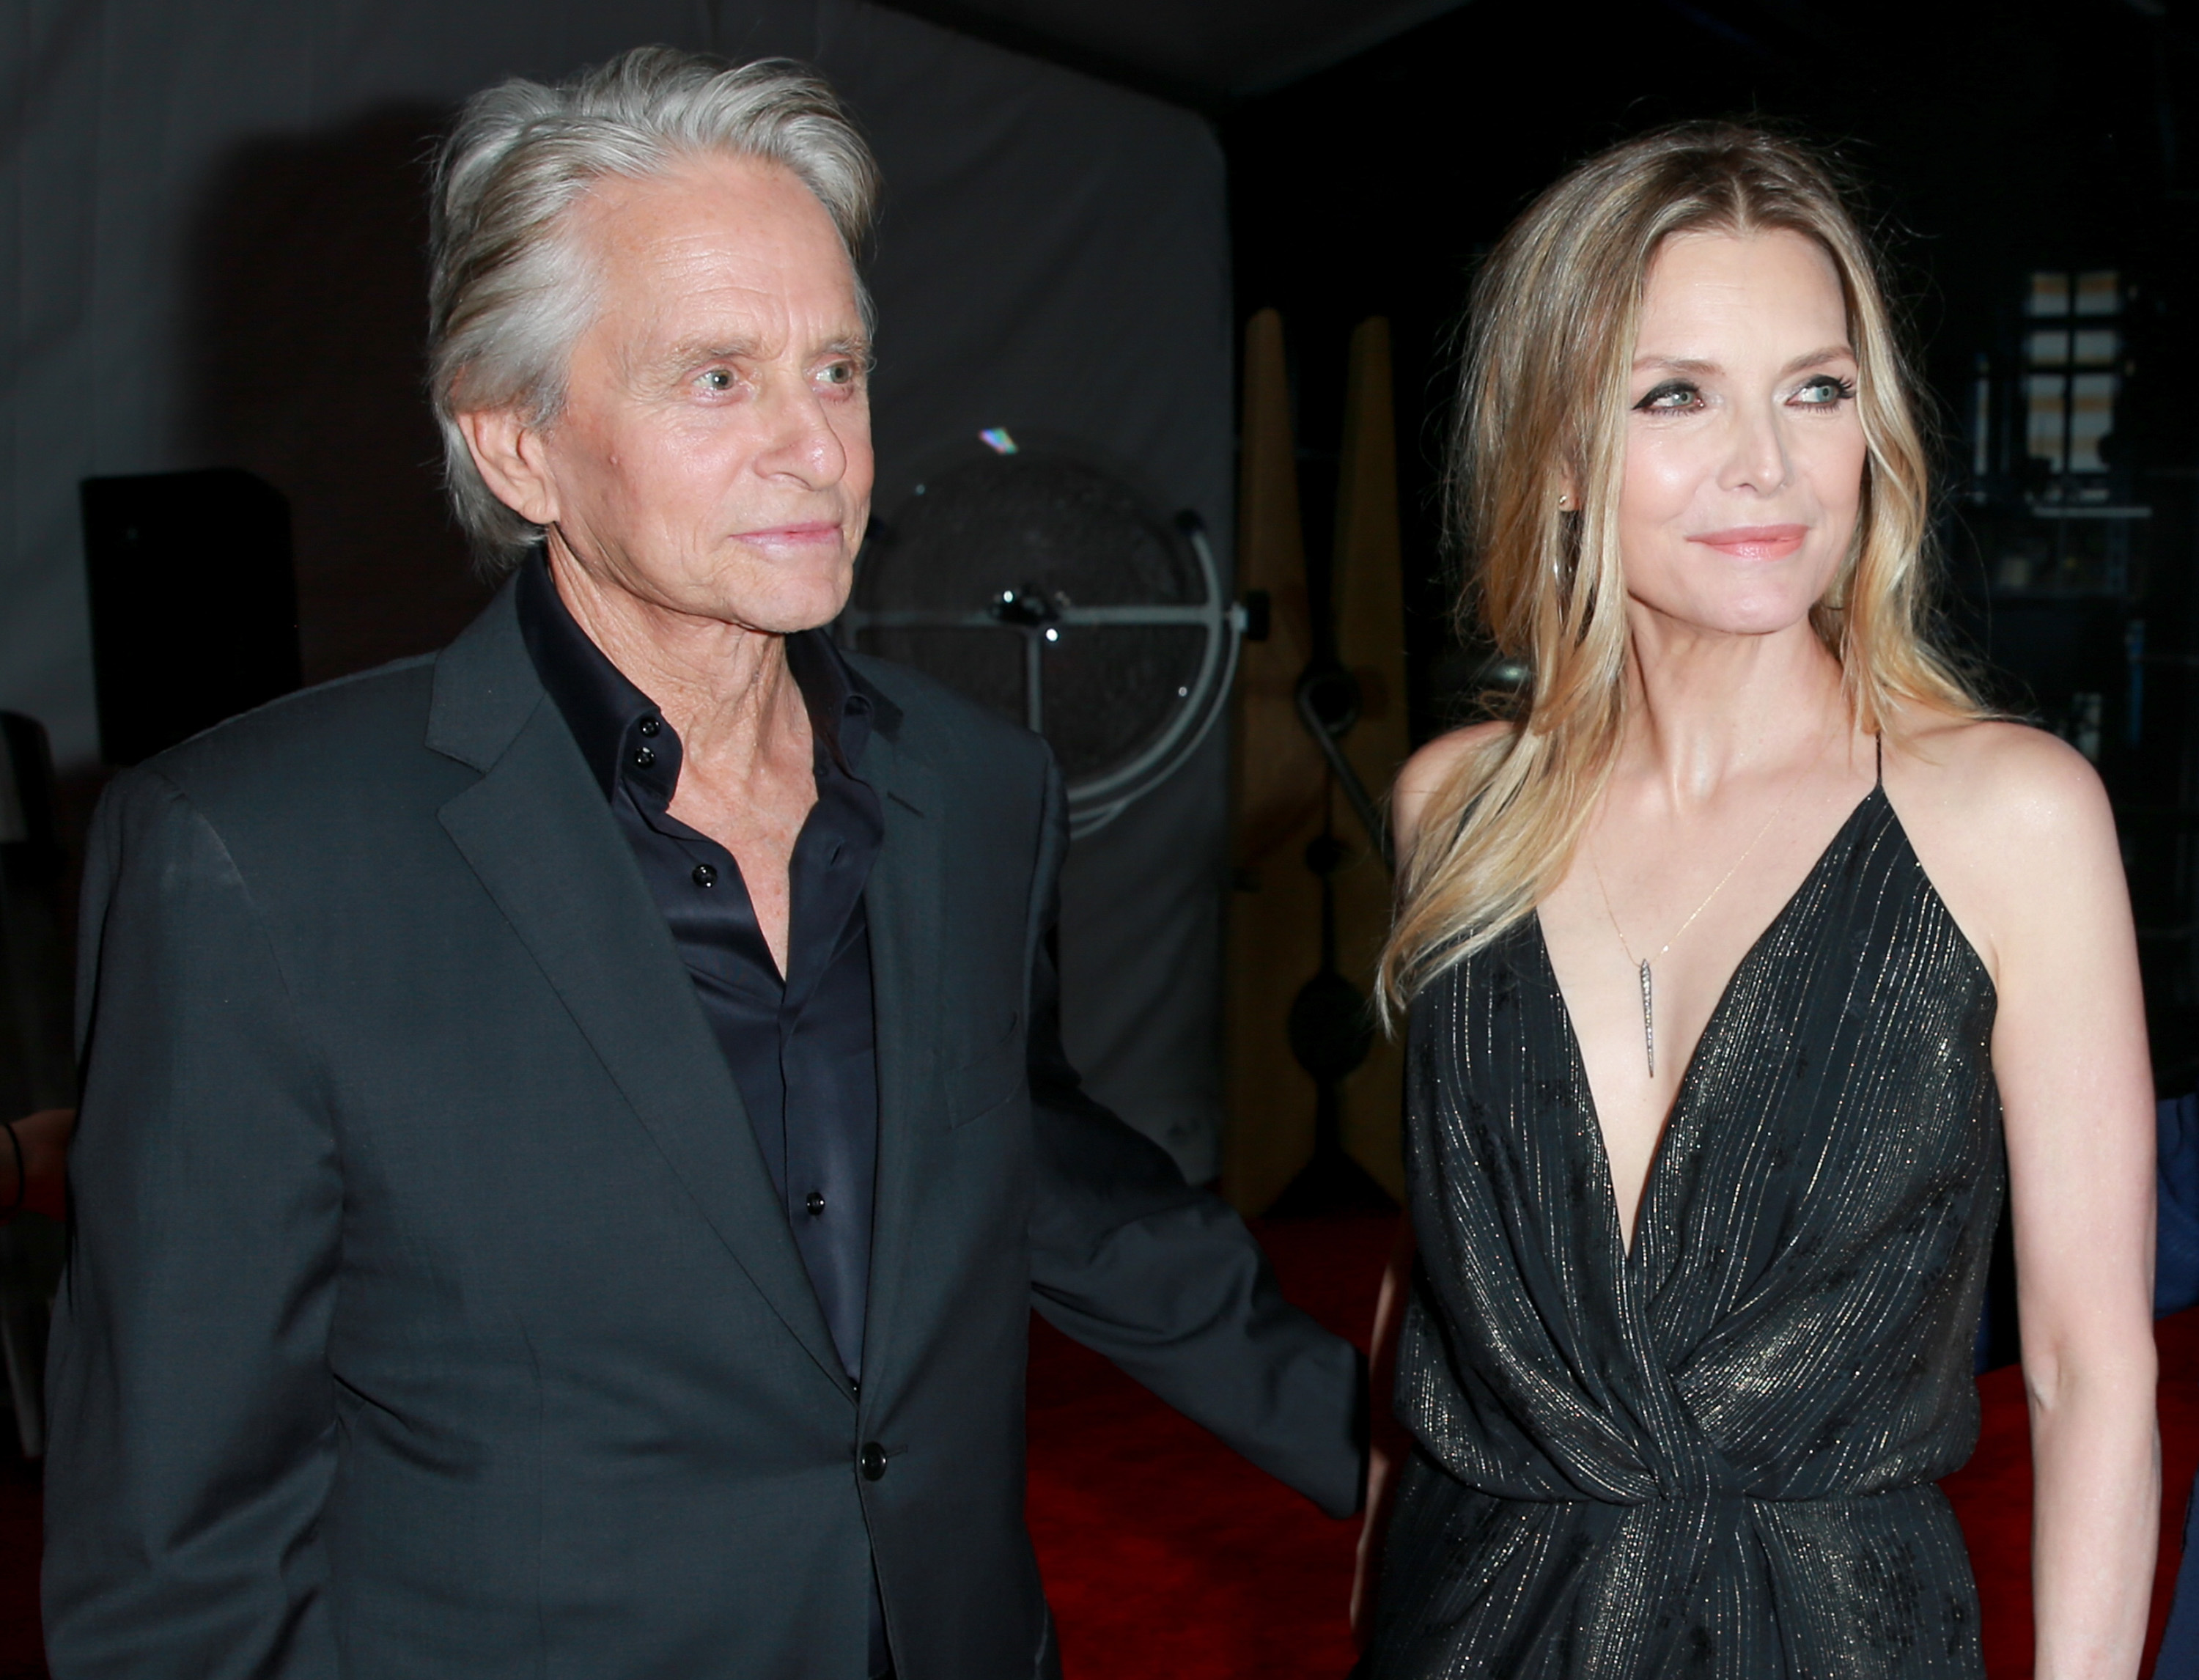 Premiere Of Disney And Marvel's 'Ant-Man And The Wasp' - Red Carpet. Michael Douglas and Michelle Pfeiffer.